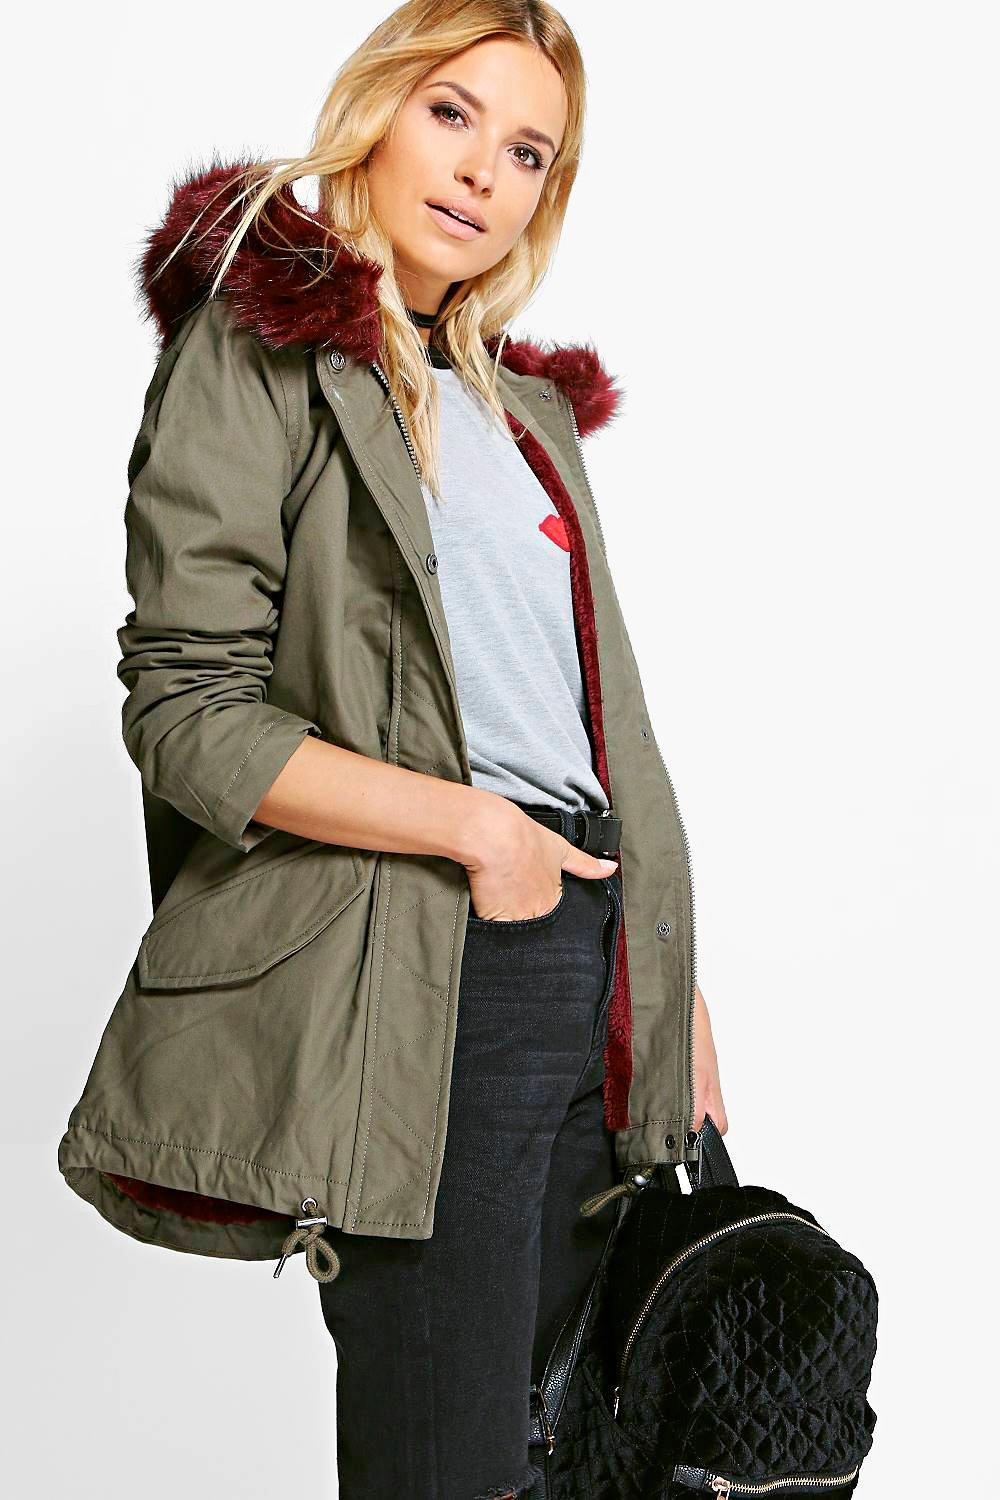 Esme Faux Fur Collar Parka Wine - pattern: plain; collar: funnel; fit: loose; style: parka; back detail: hood; length: mid thigh; secondary colour: burgundy; predominant colour: khaki; occasions: casual; fibres: cotton - 100%; sleeve length: long sleeve; sleeve style: standard; texture group: cotton feel fabrics; collar break: high; pattern type: fabric; embellishment: fur; season: a/w 2016; wardrobe: highlight